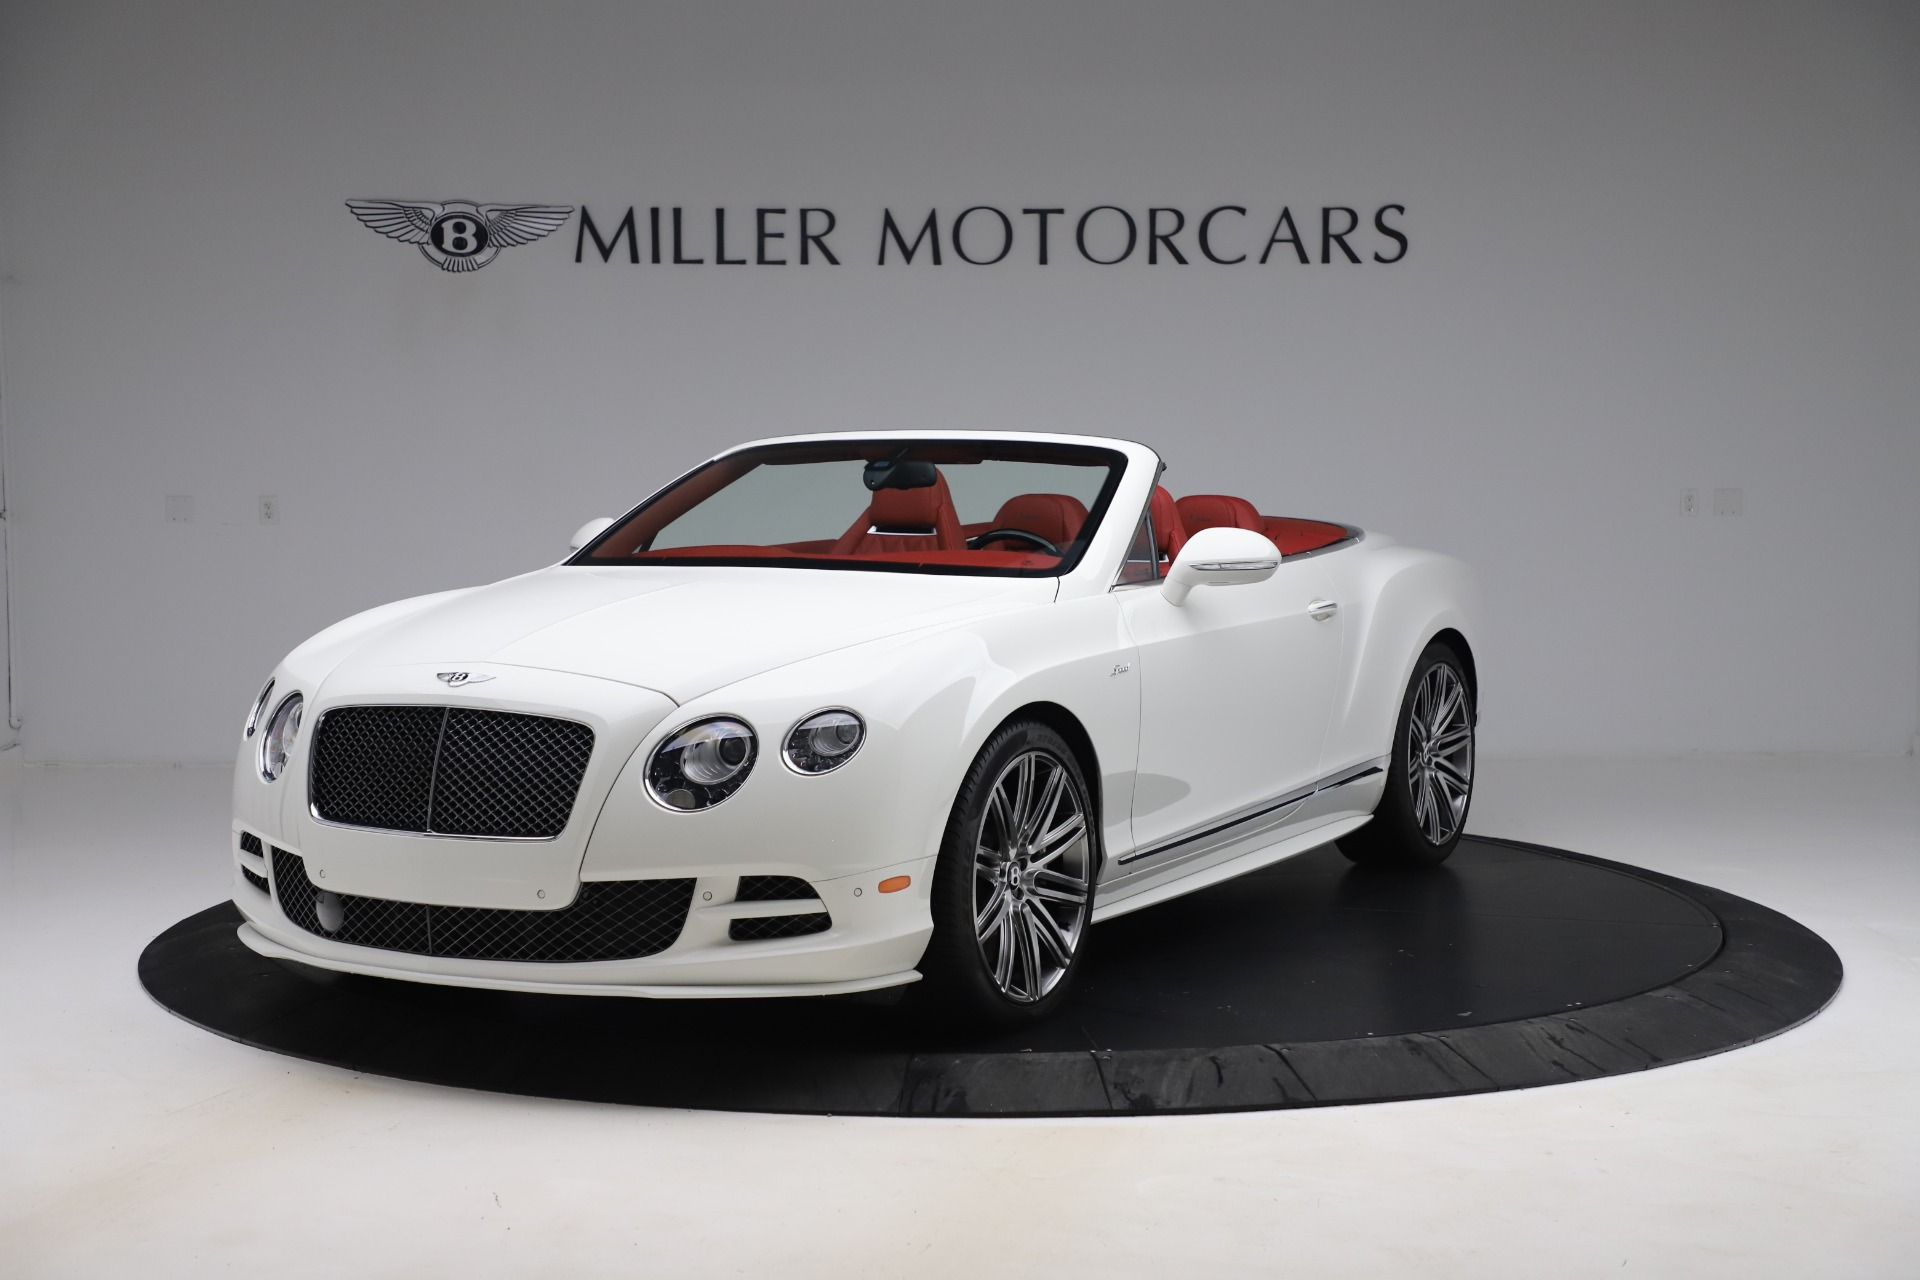 Used 2015 Bentley Continental GT Speed for sale Sold at Bugatti of Greenwich in Greenwich CT 06830 1